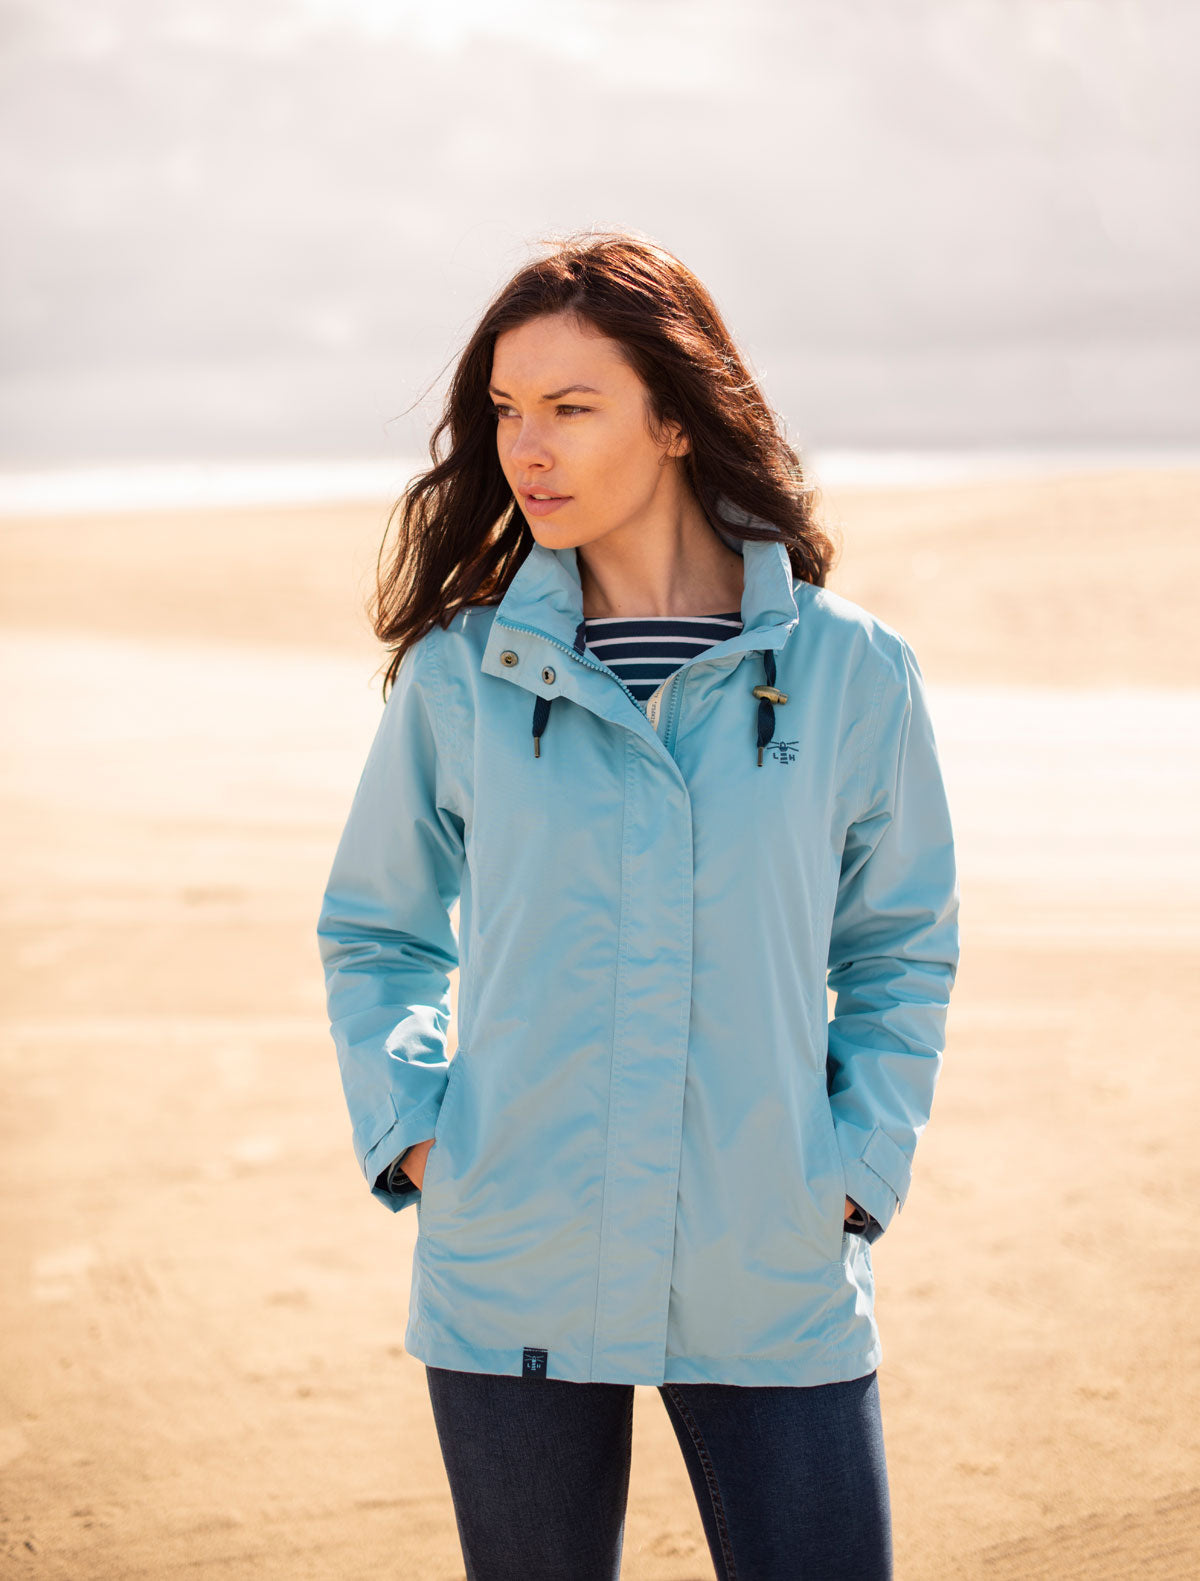 Women's Coats - Beachcomber - Blue Raincoat